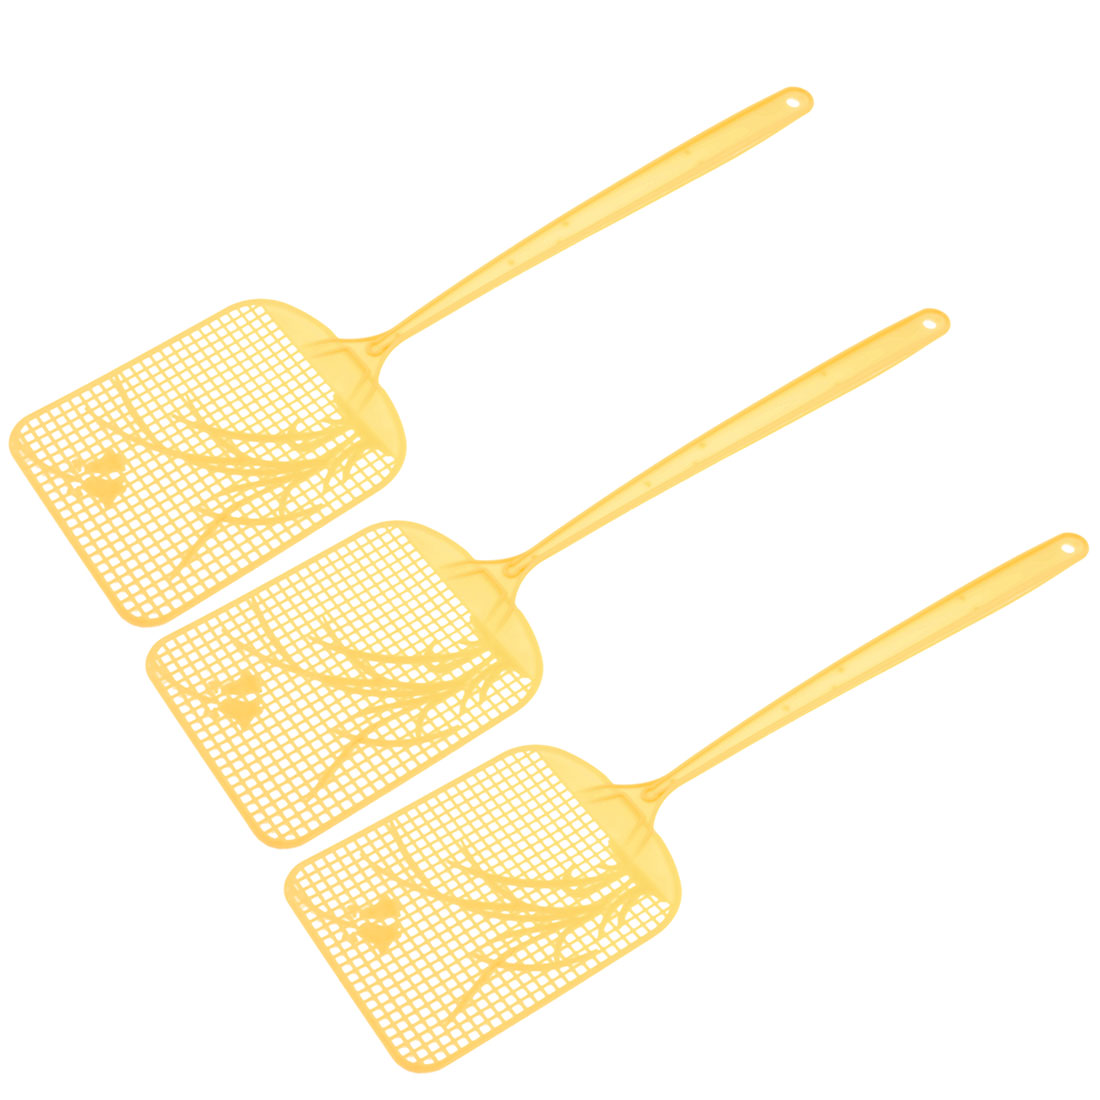 3 Pcs Yellow Plastic Long Handle Mosquito Cockroach Tool Fly Swatter